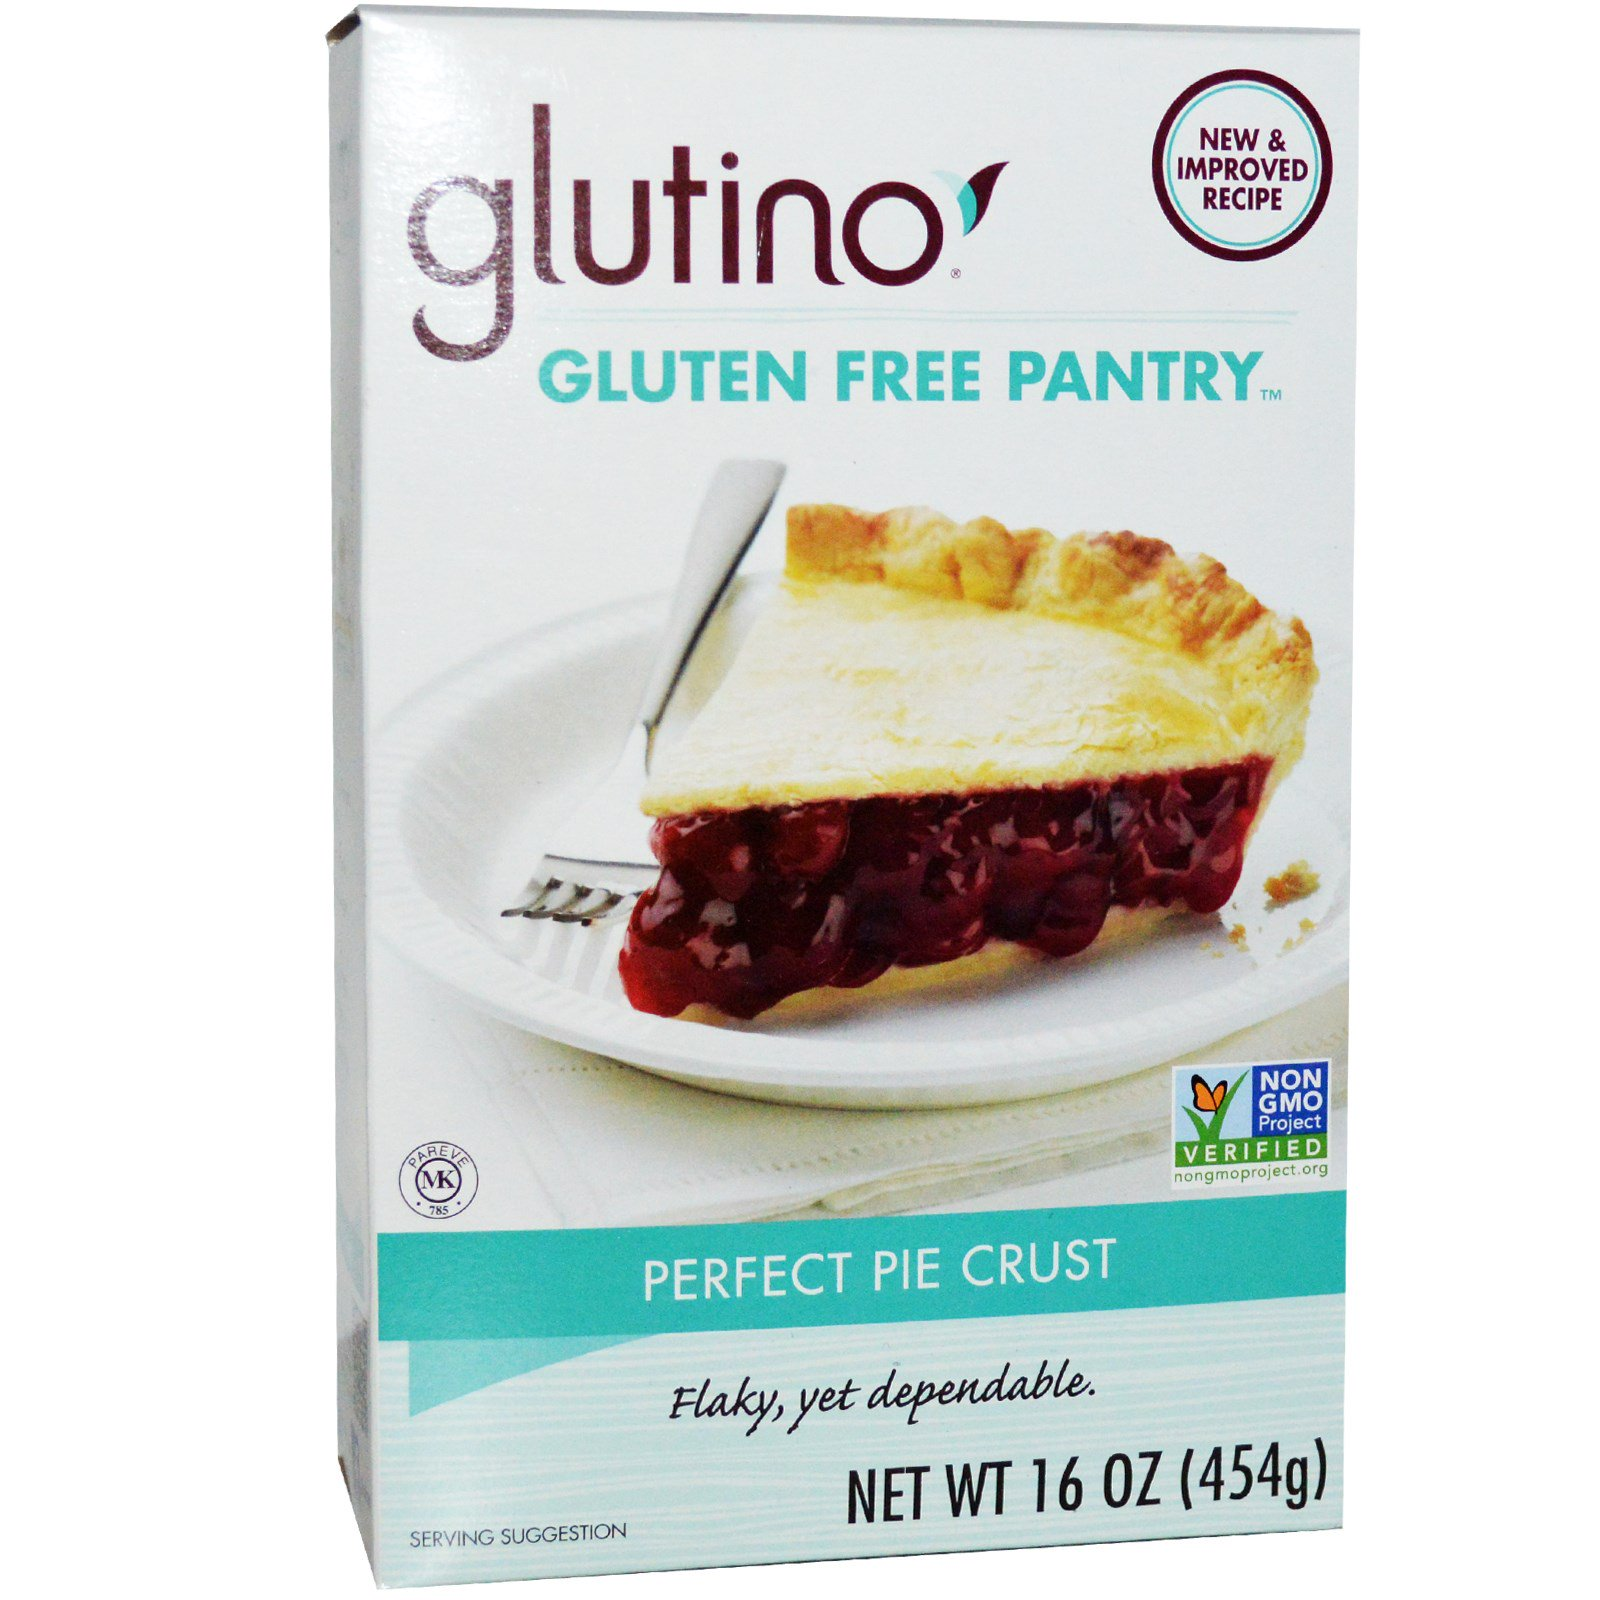 Glutino gluten free pantry perfect pie crust mix 16-ounce boxes.